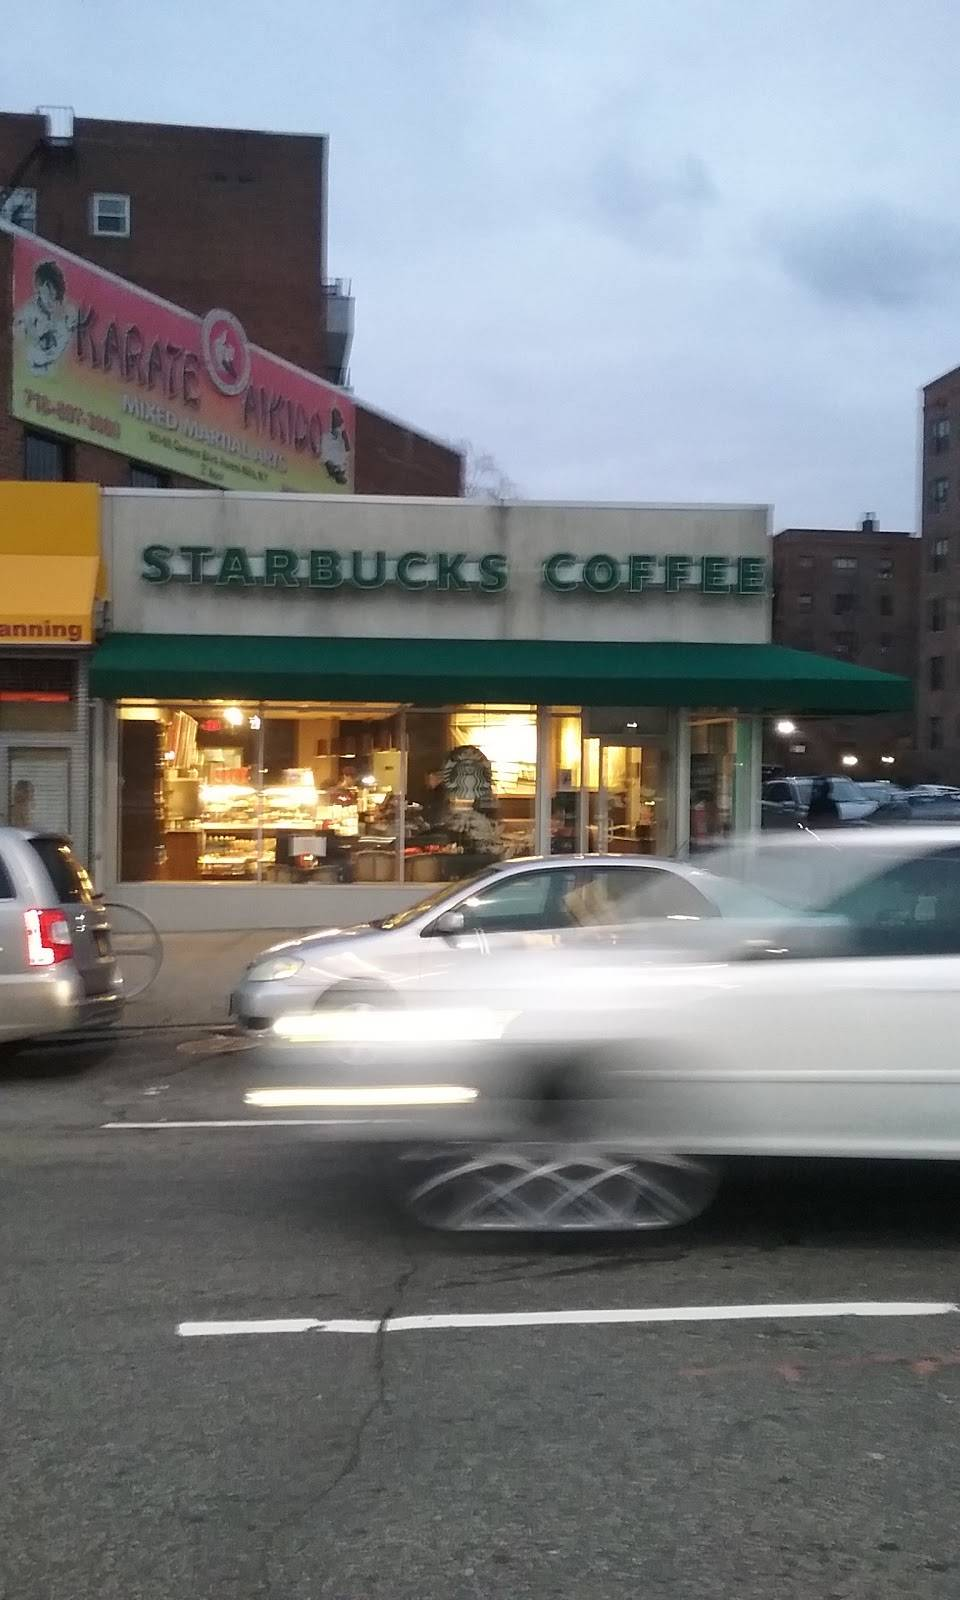 NY Hot Bagels and Bialys | restaurant | 101-01 Queens Blvd, Forest Hills, NY 11375, USA | 7189971537 OR +1 718-997-1537